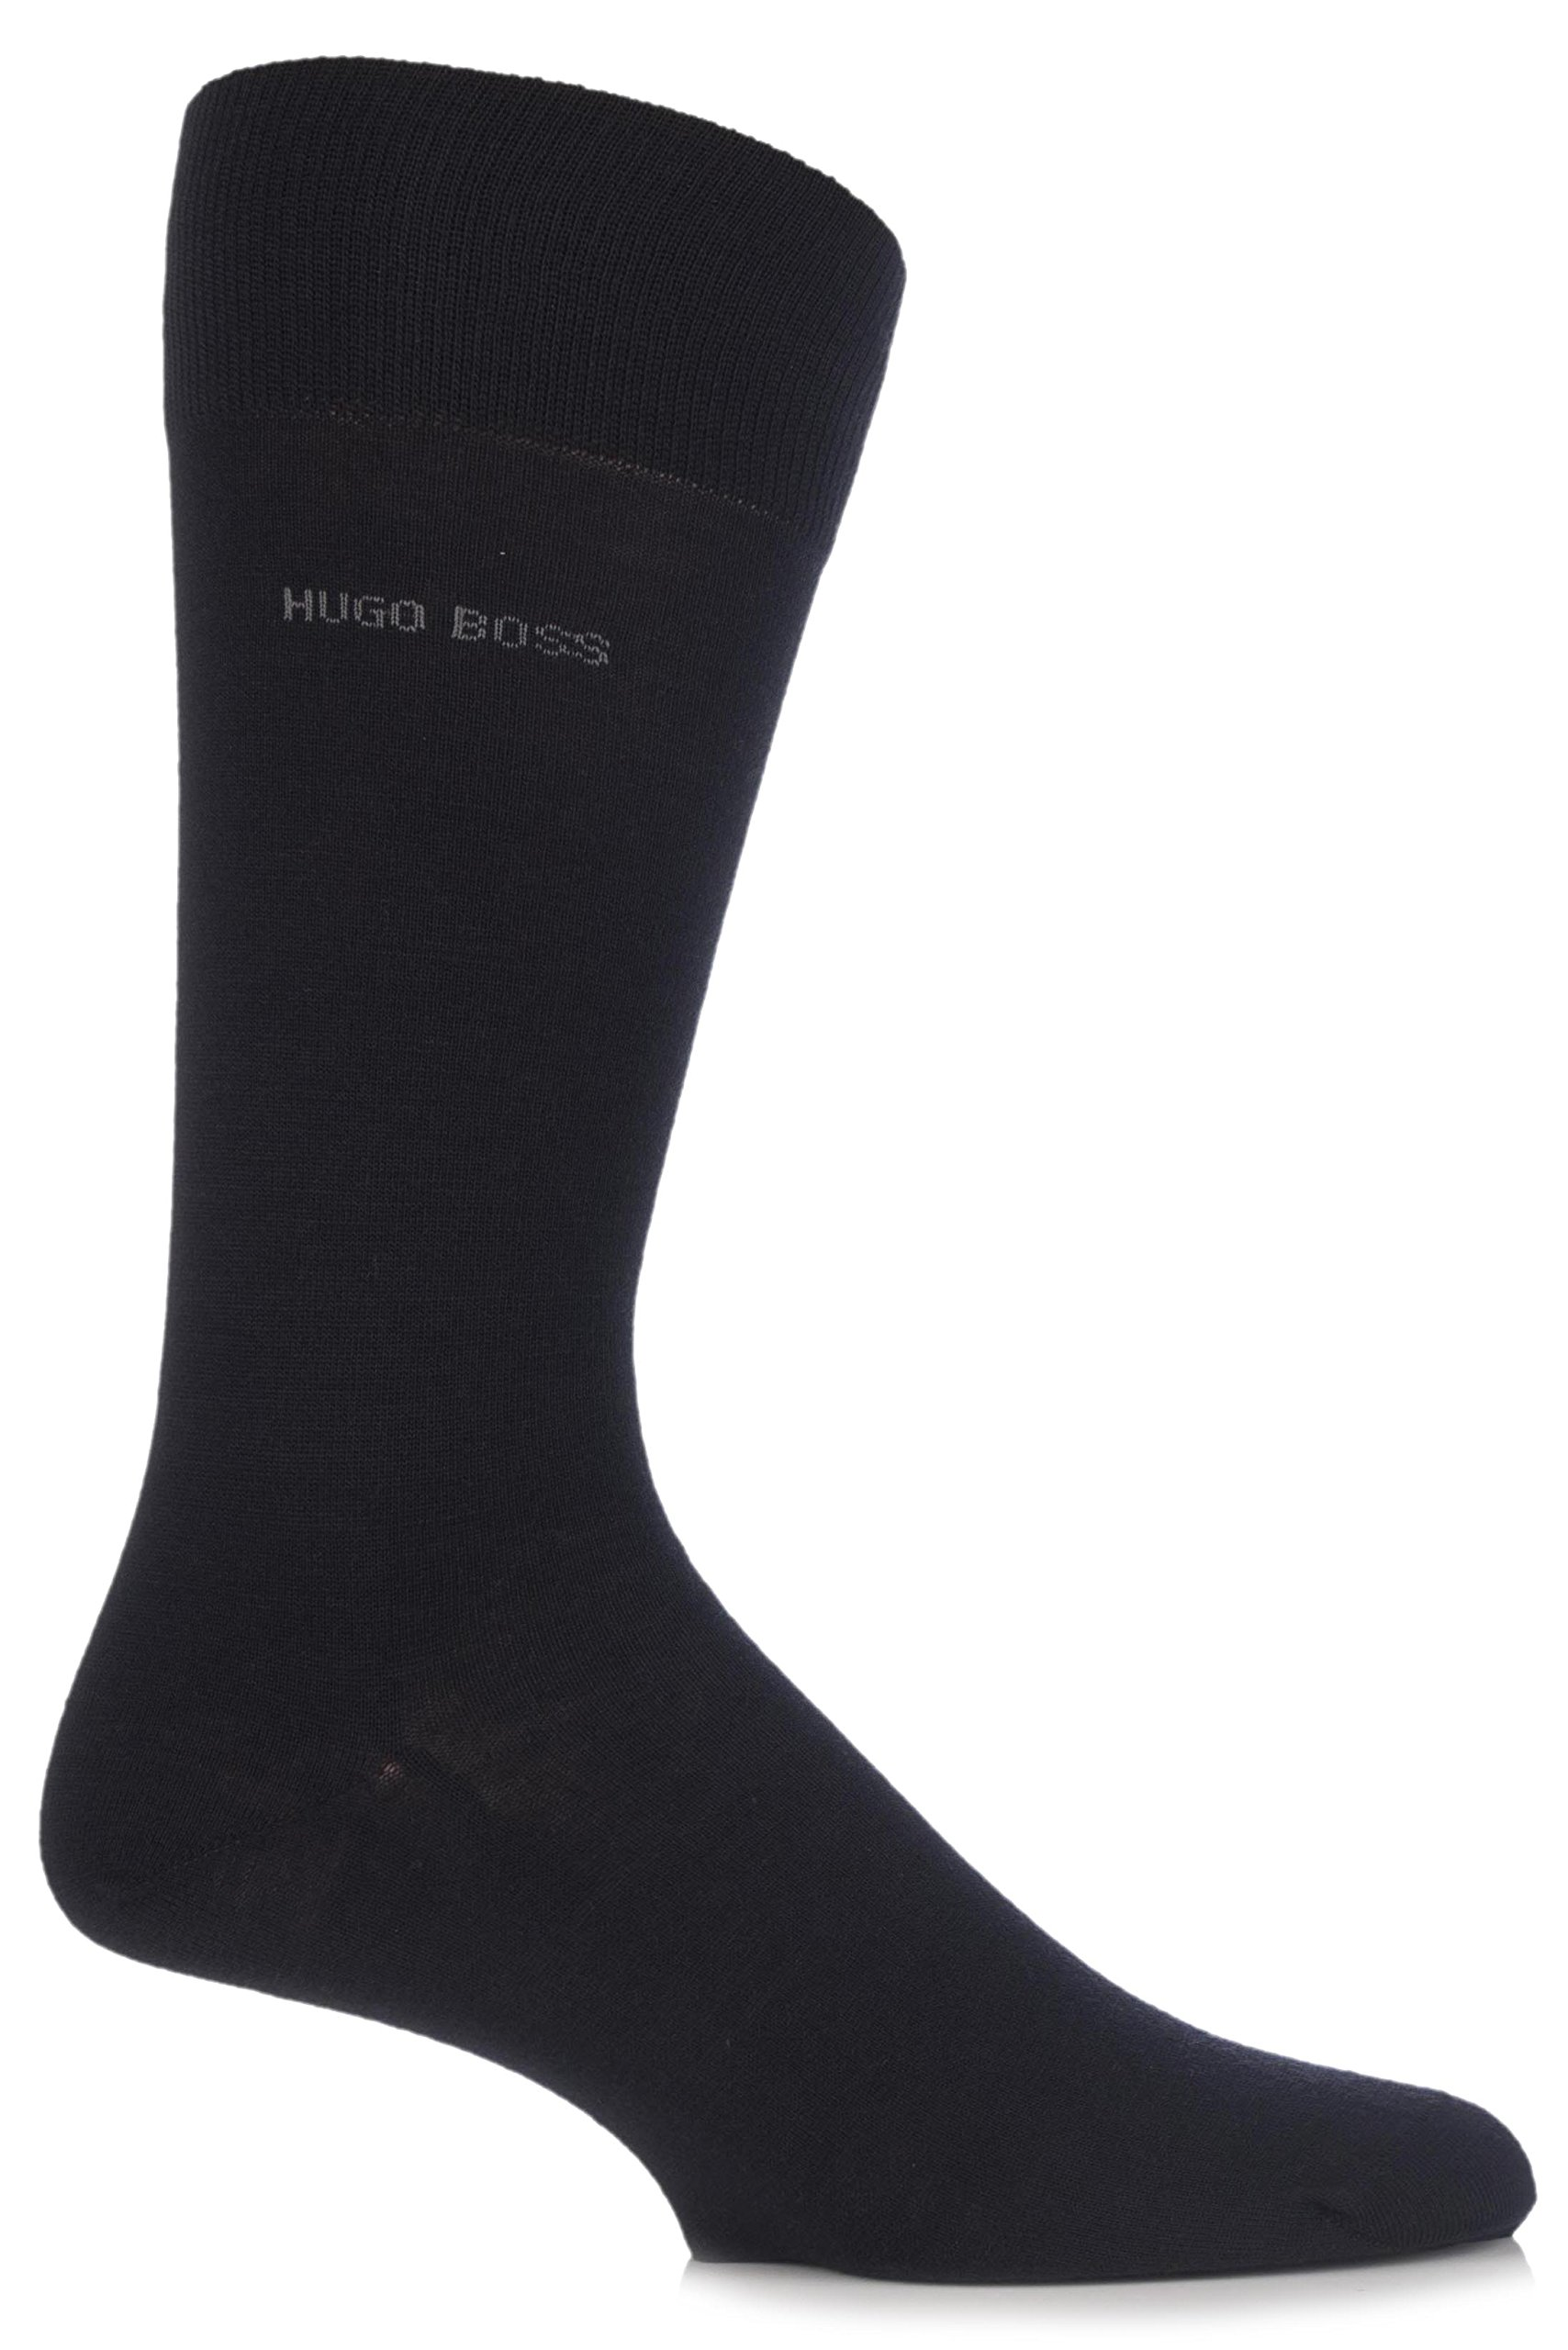 Hugo Boss Men's 1 Pair John Plain Finest Wool and Soft Cotton Socks 8-9 Black